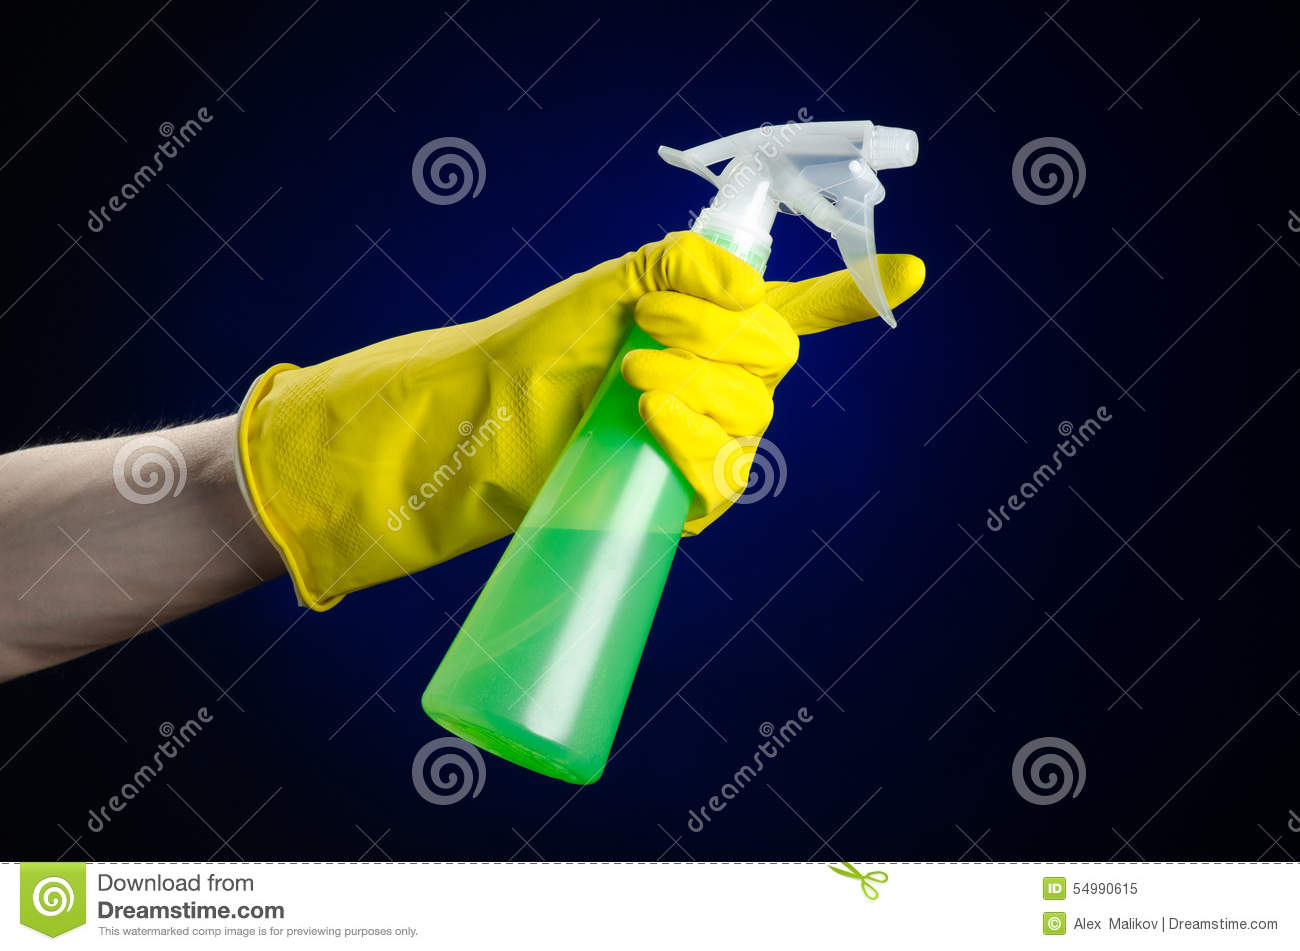 Cleaning The House And Cleaner Theme: Man's Hand In A Yellow